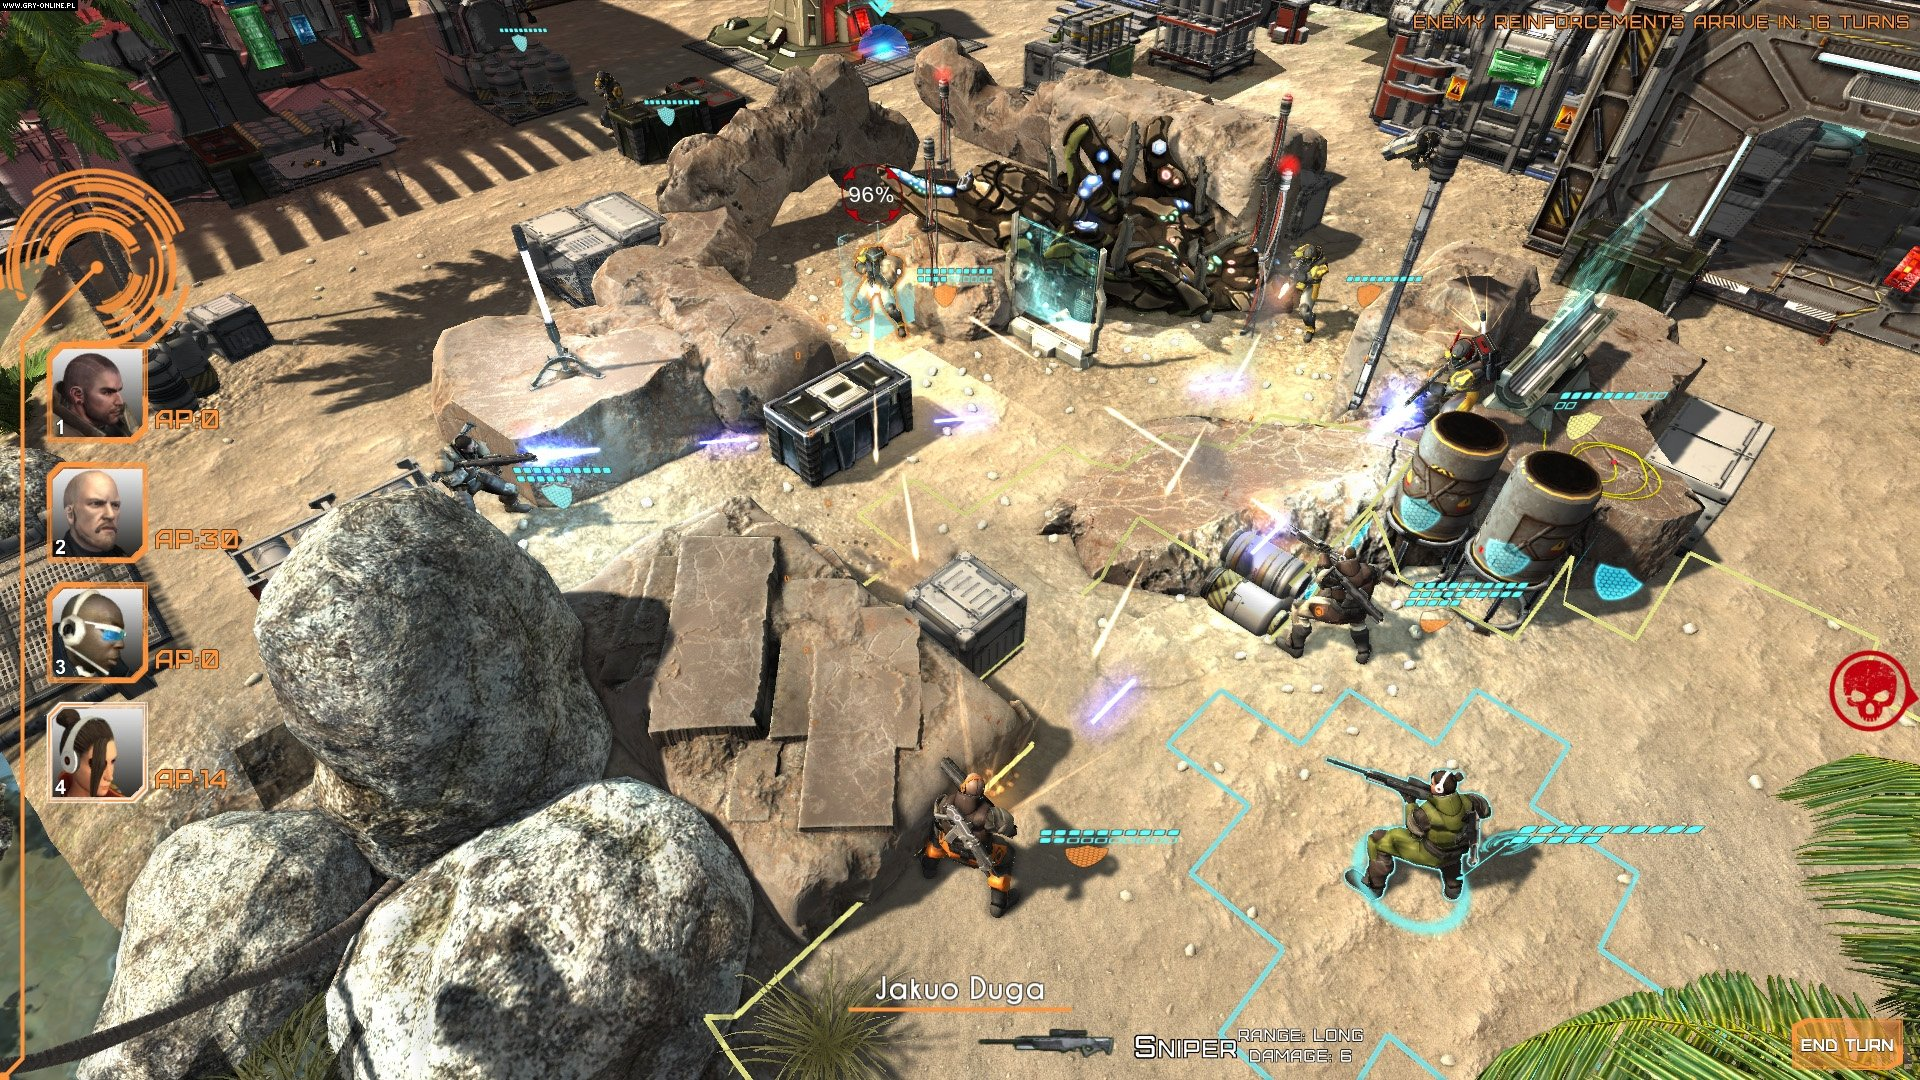 Shock Tactics PC Games Image 6/9, Point Blank Games, EuroVideo Medien